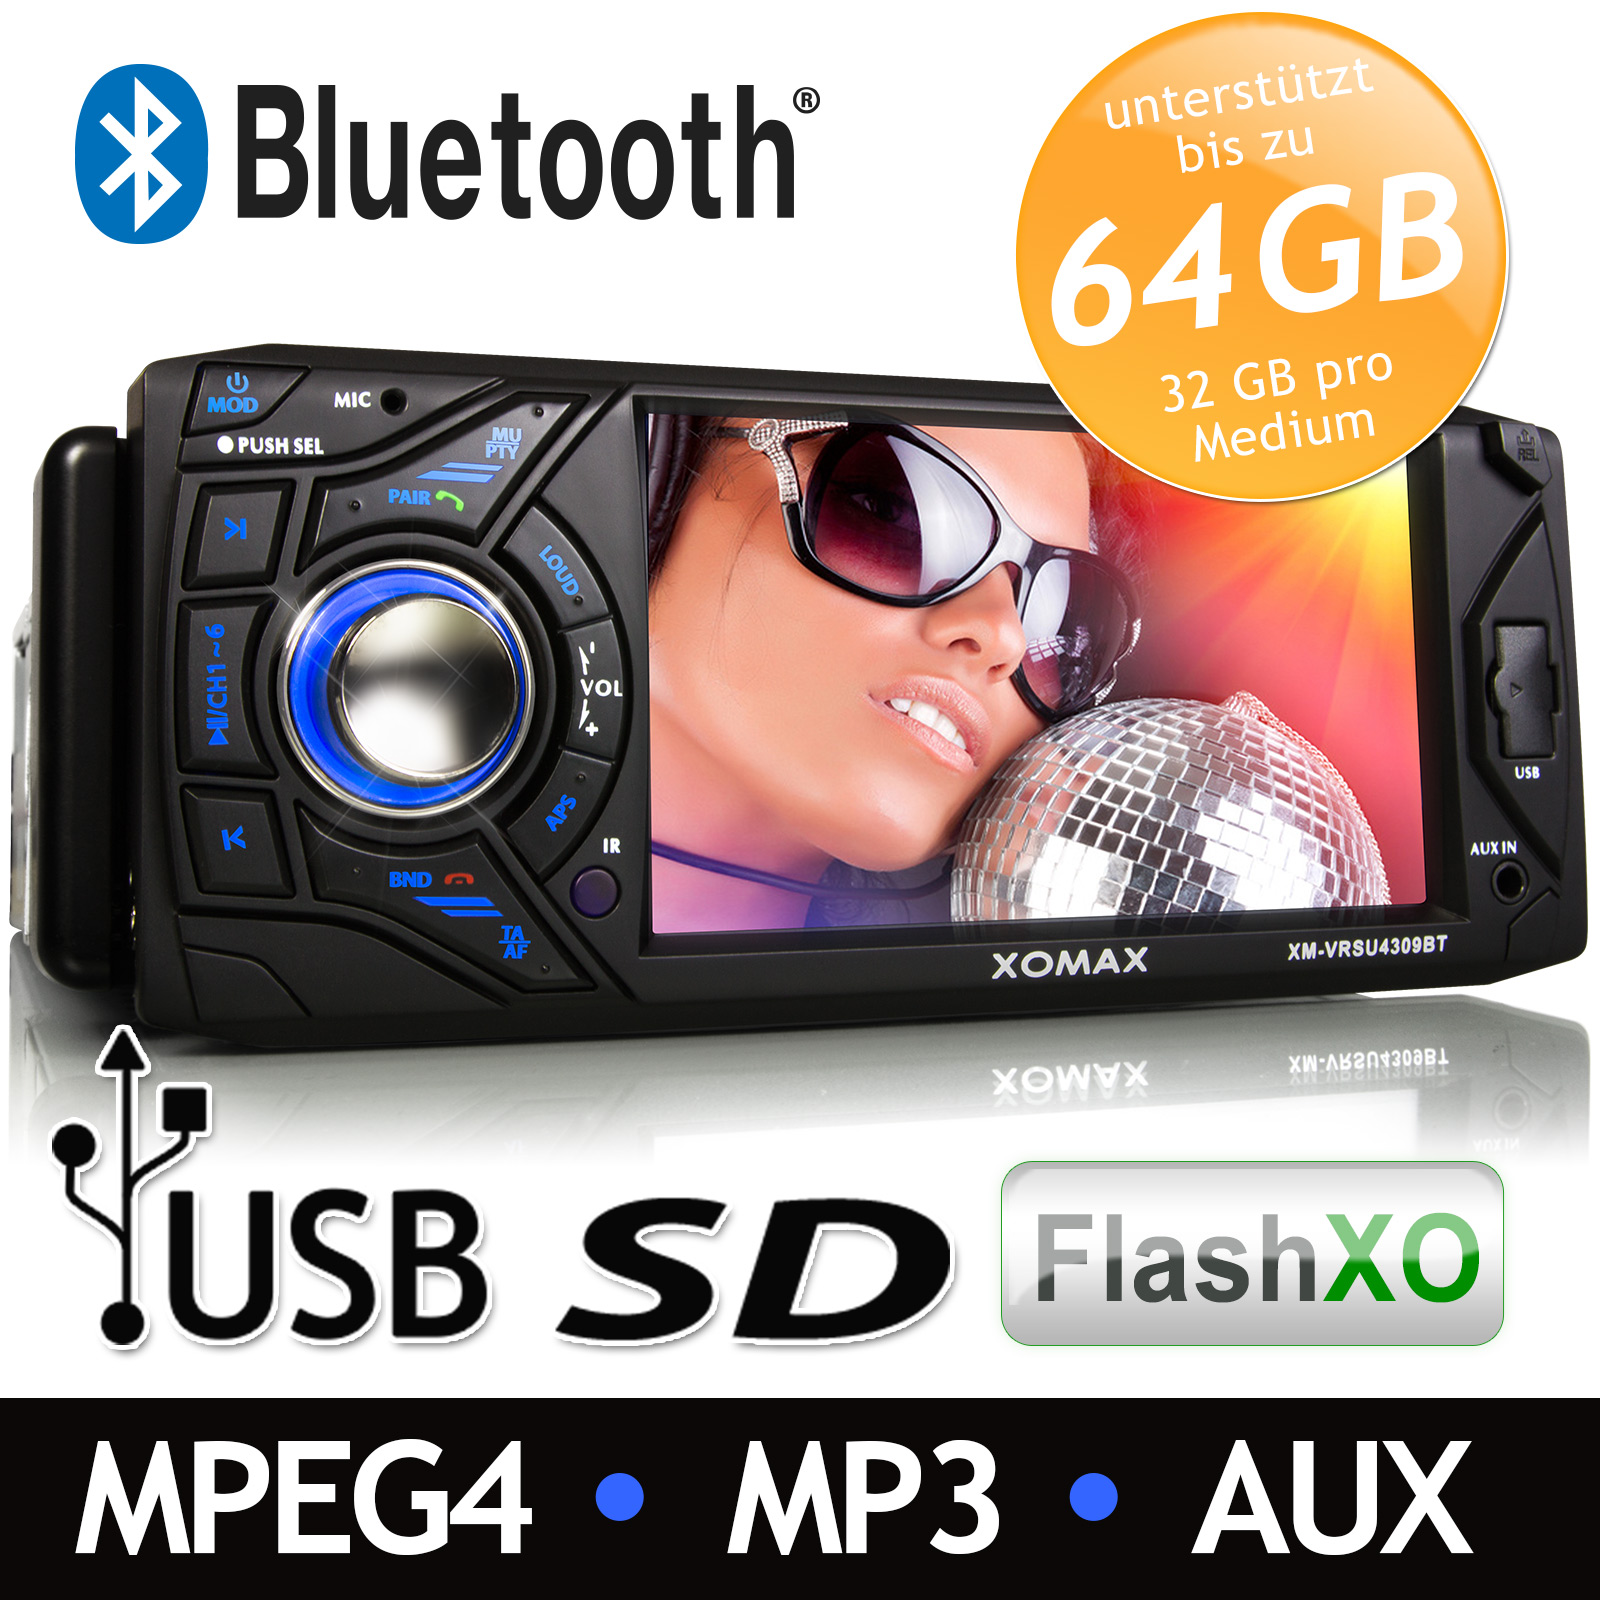 AUTORADIO-TOUCHSCREEN-BLUETOOTH-USB-SD-SDHC-VIDEO-MP3-AVI-RDS-1DIN-ohne-CD-DVD